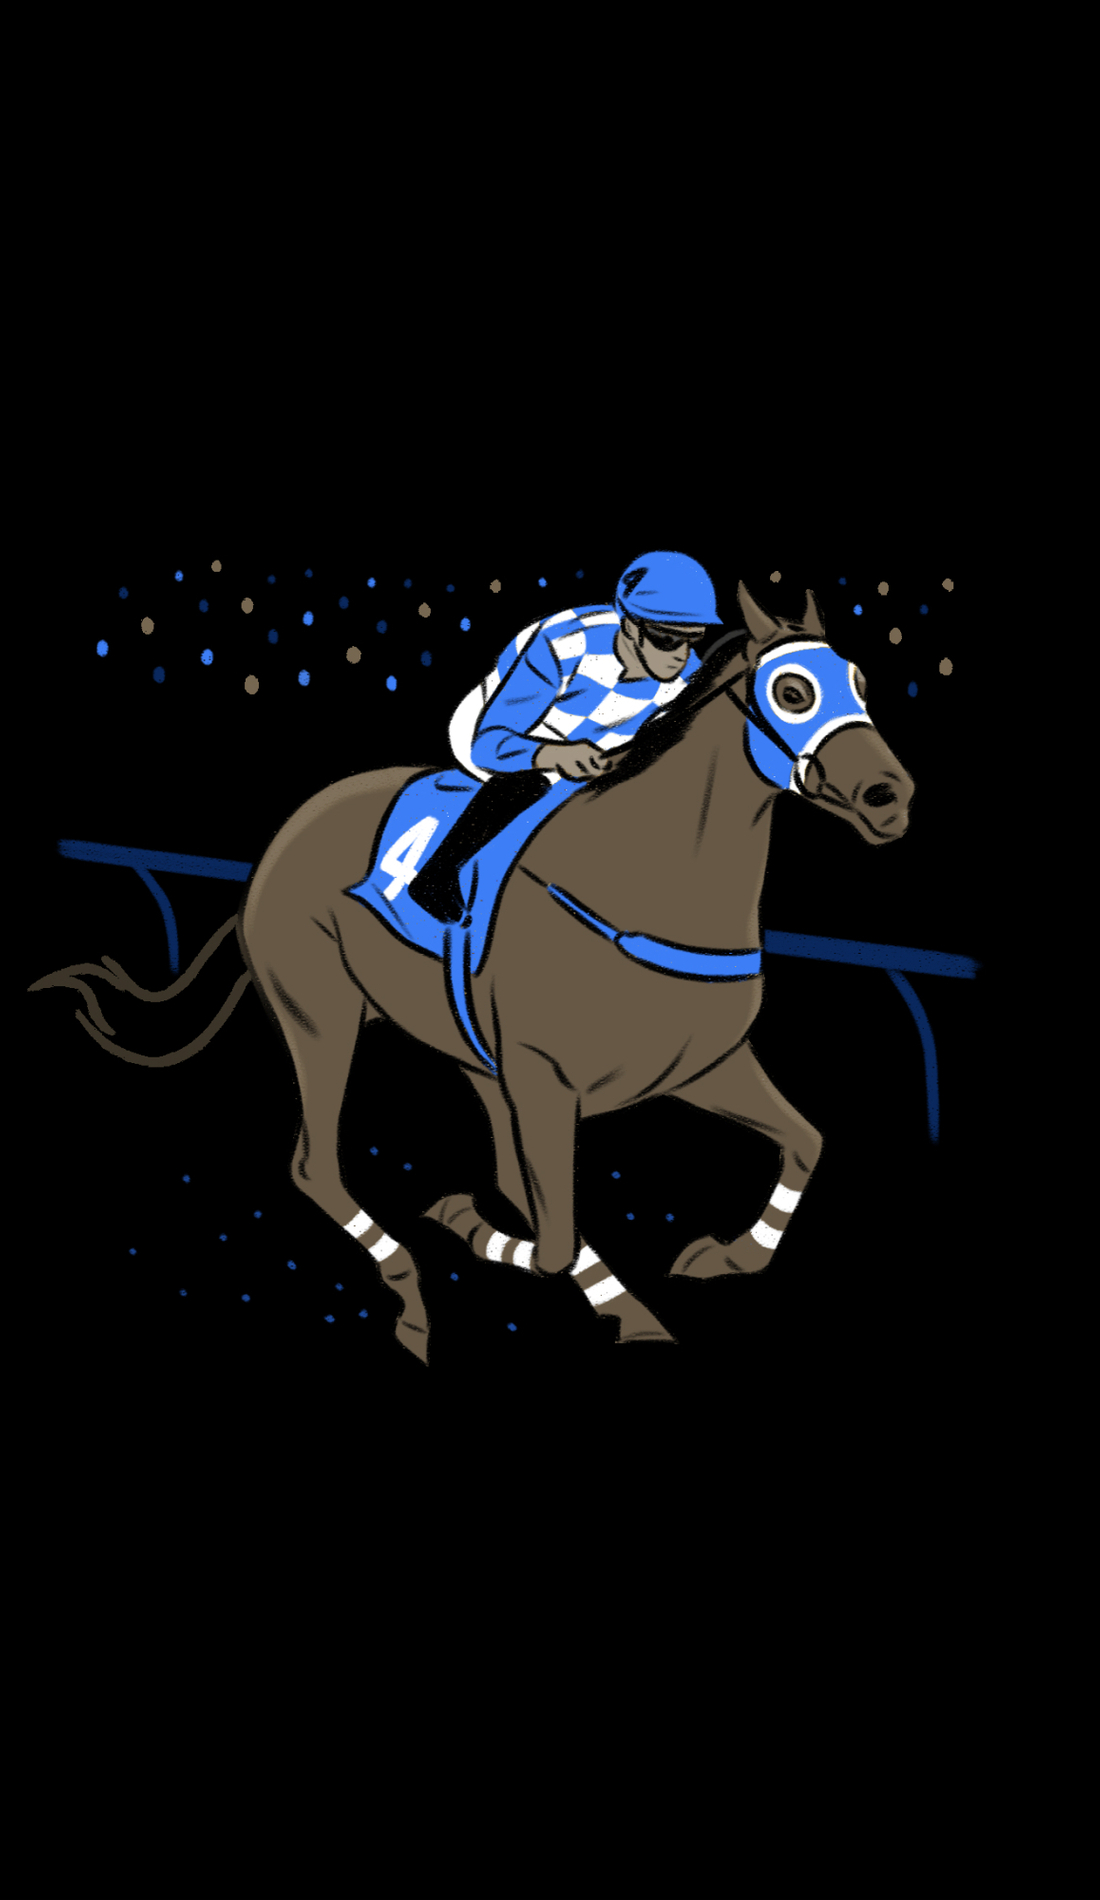 A Del Mar Thoroughbred Racing live event